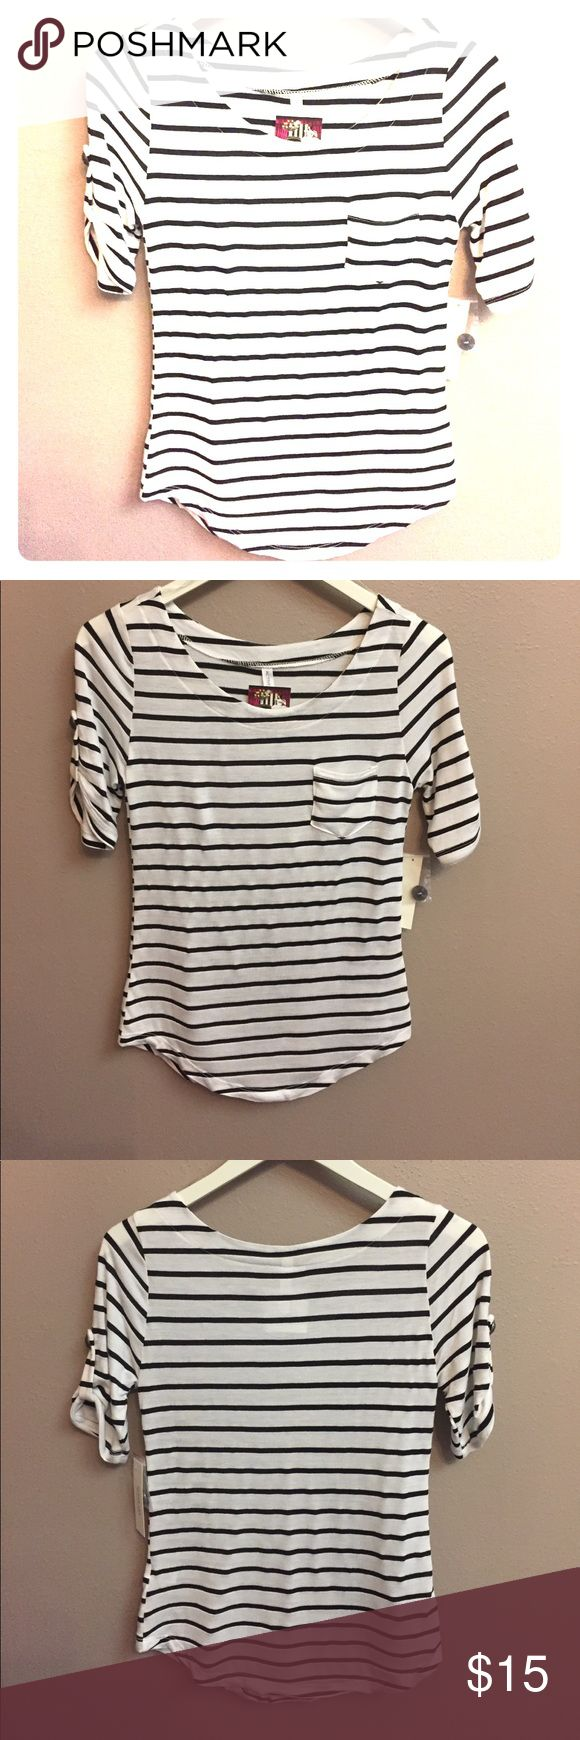 Stripe Short sleeve top Stripe Short sleeve top Tops Blouses